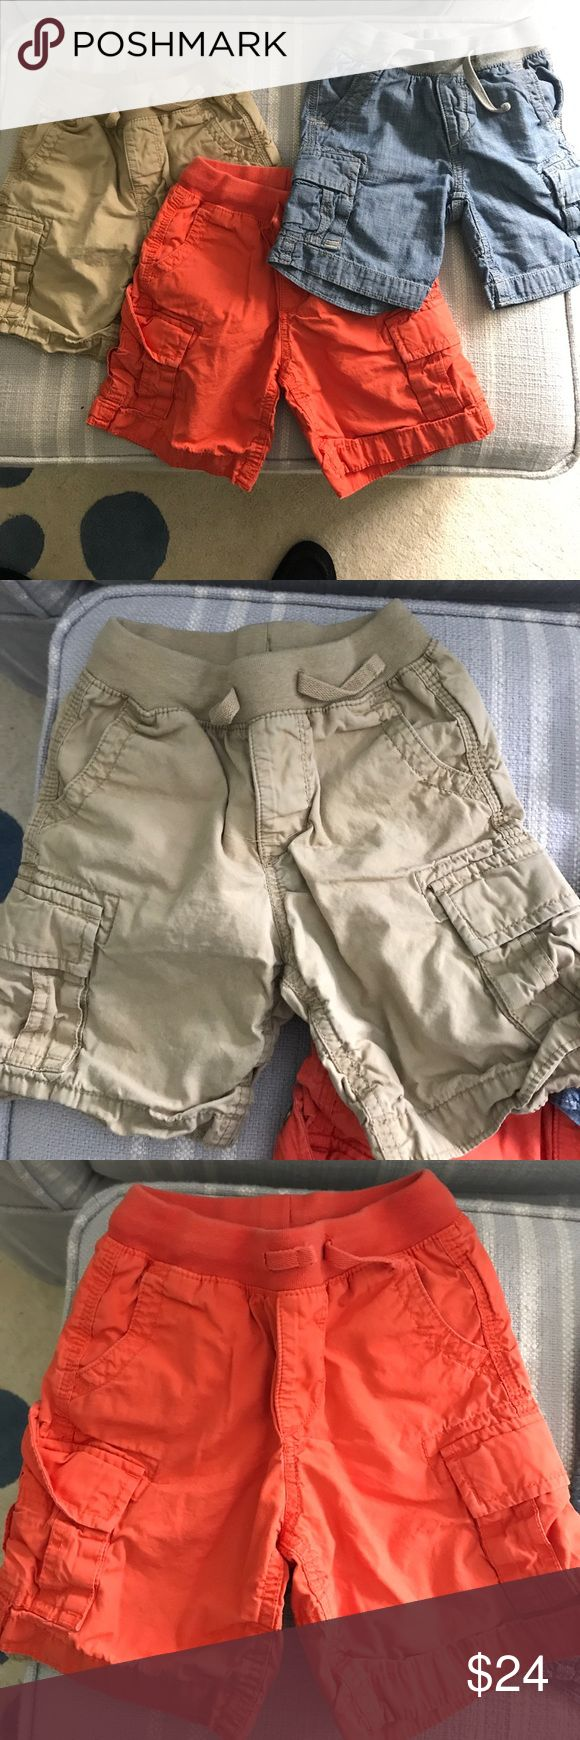 Gap cargo short bundle size 3T Gap cargo short bundle size 3T all in good condition no rips tears or stains GAP Bottoms Shorts